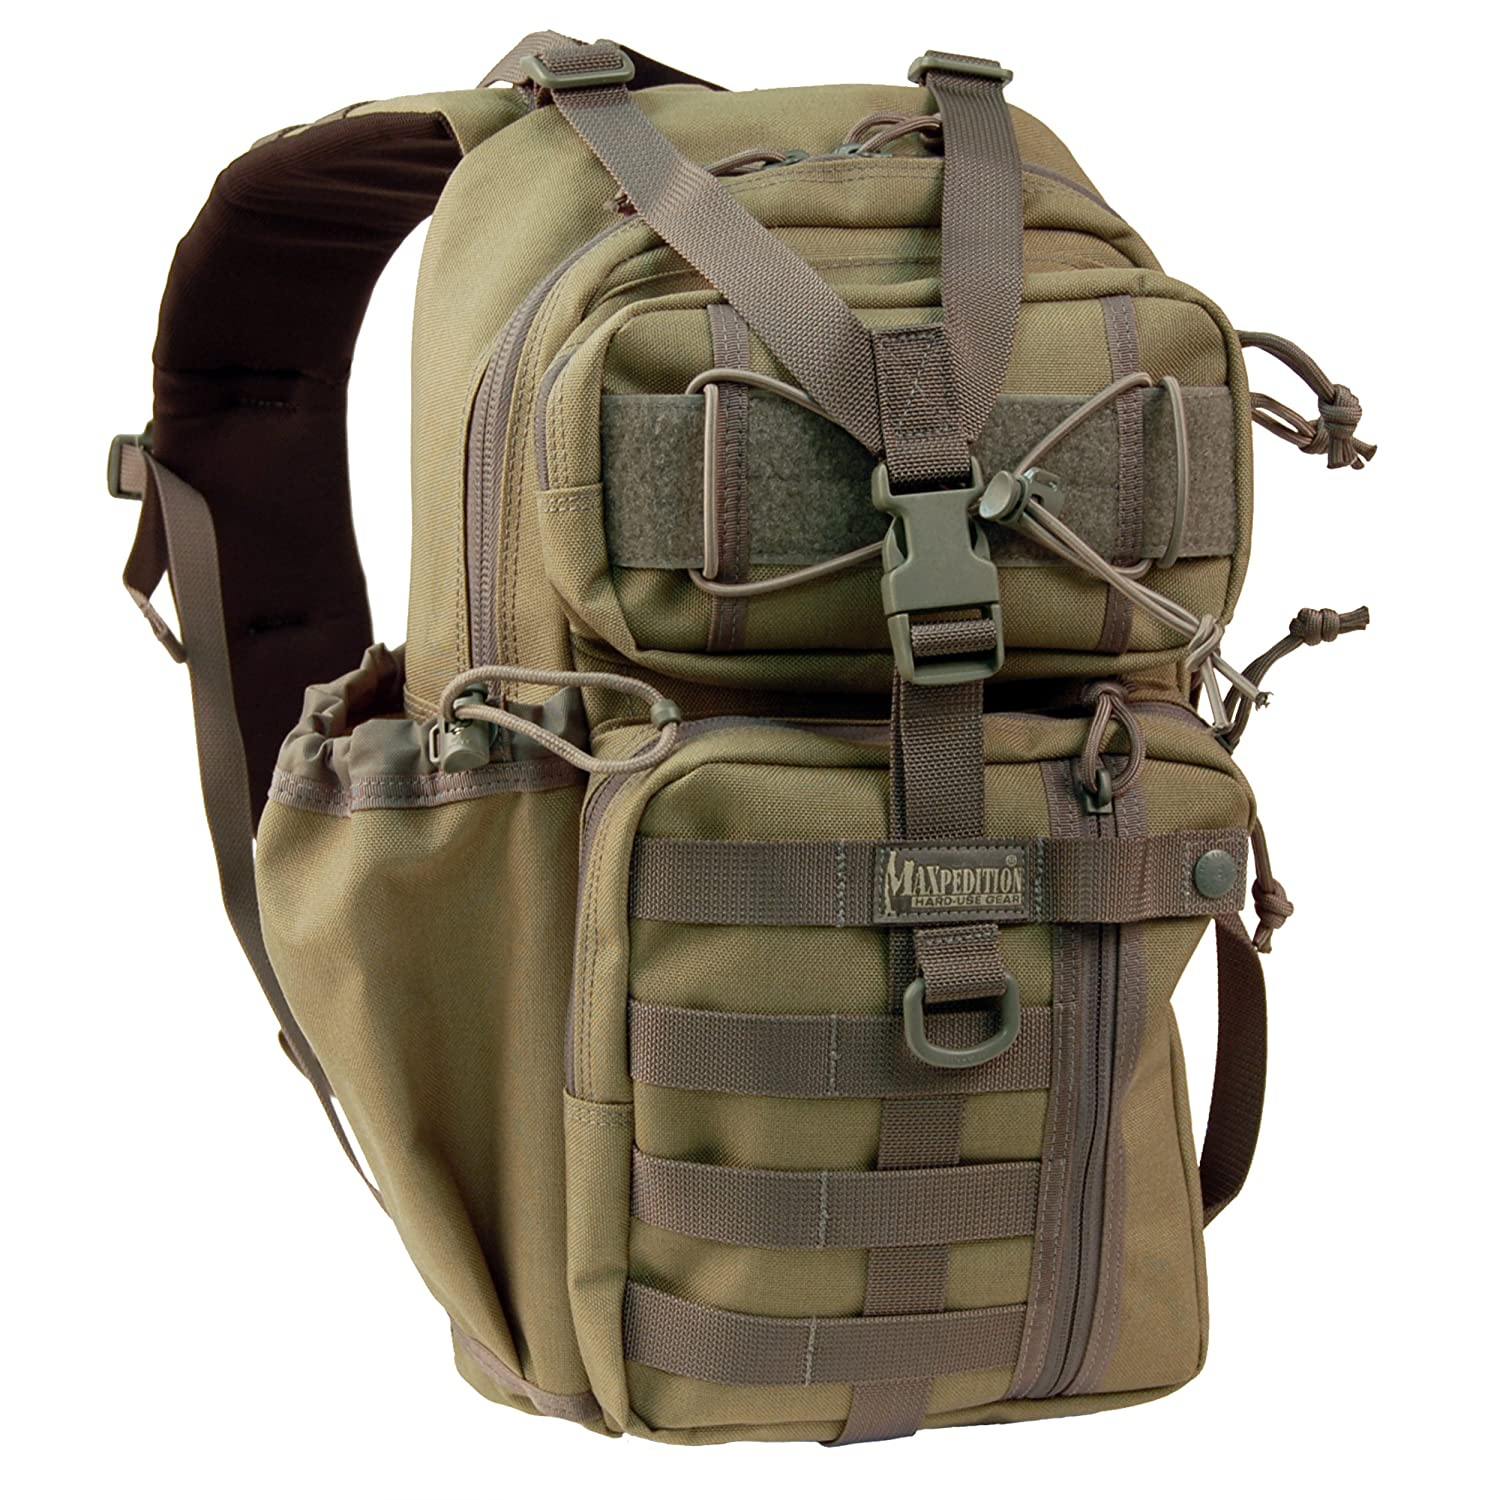 The Maxpedition Sitka Gearslinger travel product recommended by Afzaal Arshad on Lifney.